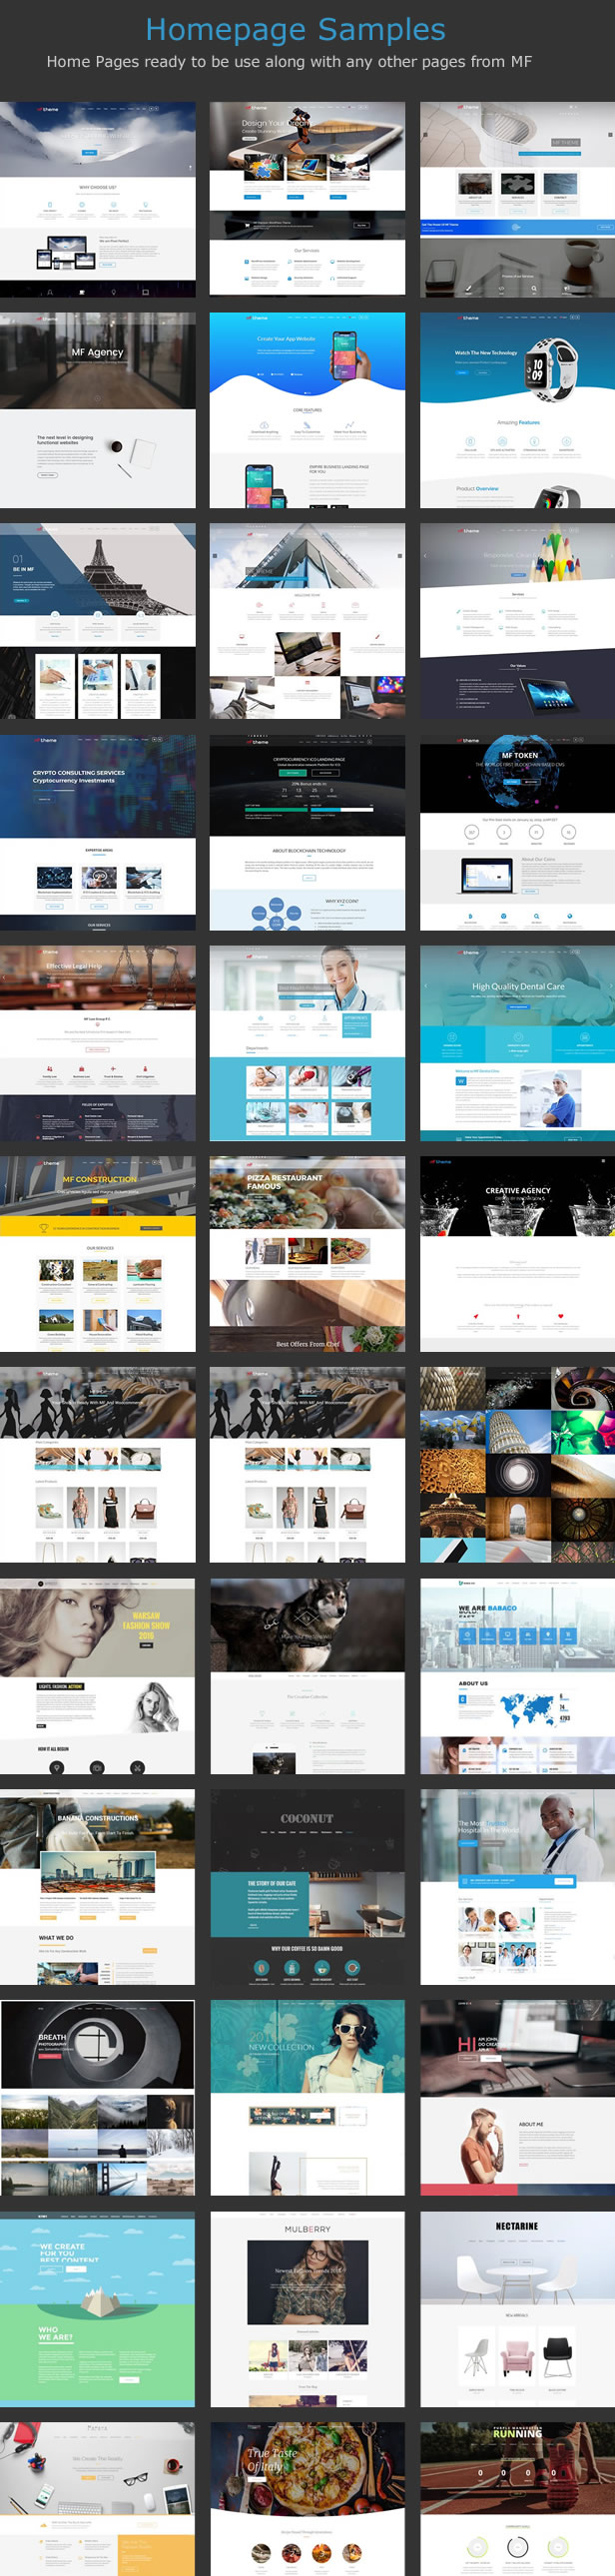 demos 18 - MF - Multipurpose WordPress Theme